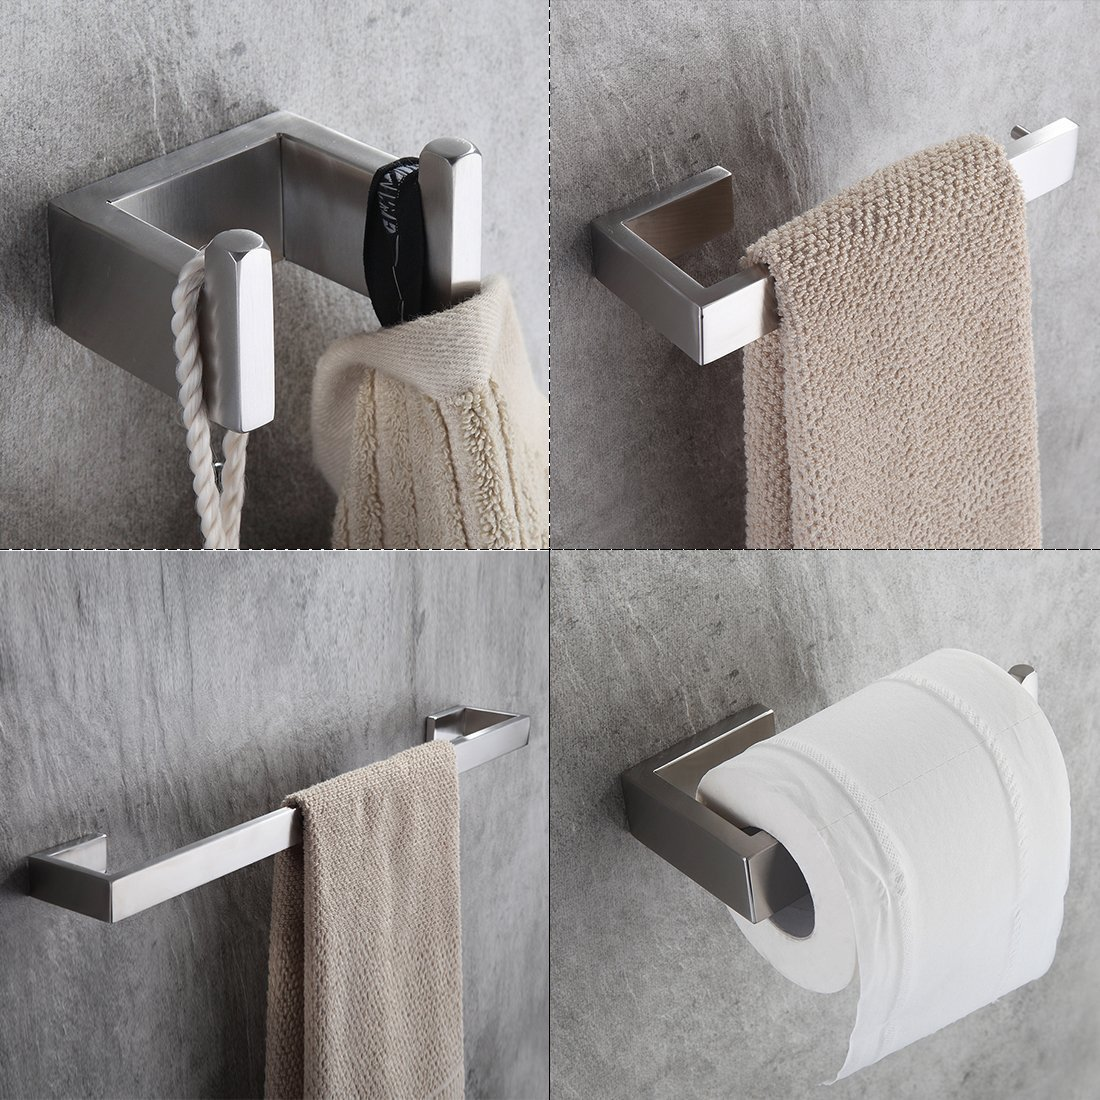 4 Piece/set Bath Hardware Sets 304 Stainless Steel Bathroom Accessories Set Single Towel Bar, Robe Hook, Paper Holder FLG90012SS nickel brushed 304 stainless steel next bathroom accessories set single towel bar cloth hook paper holder bath hardware sets